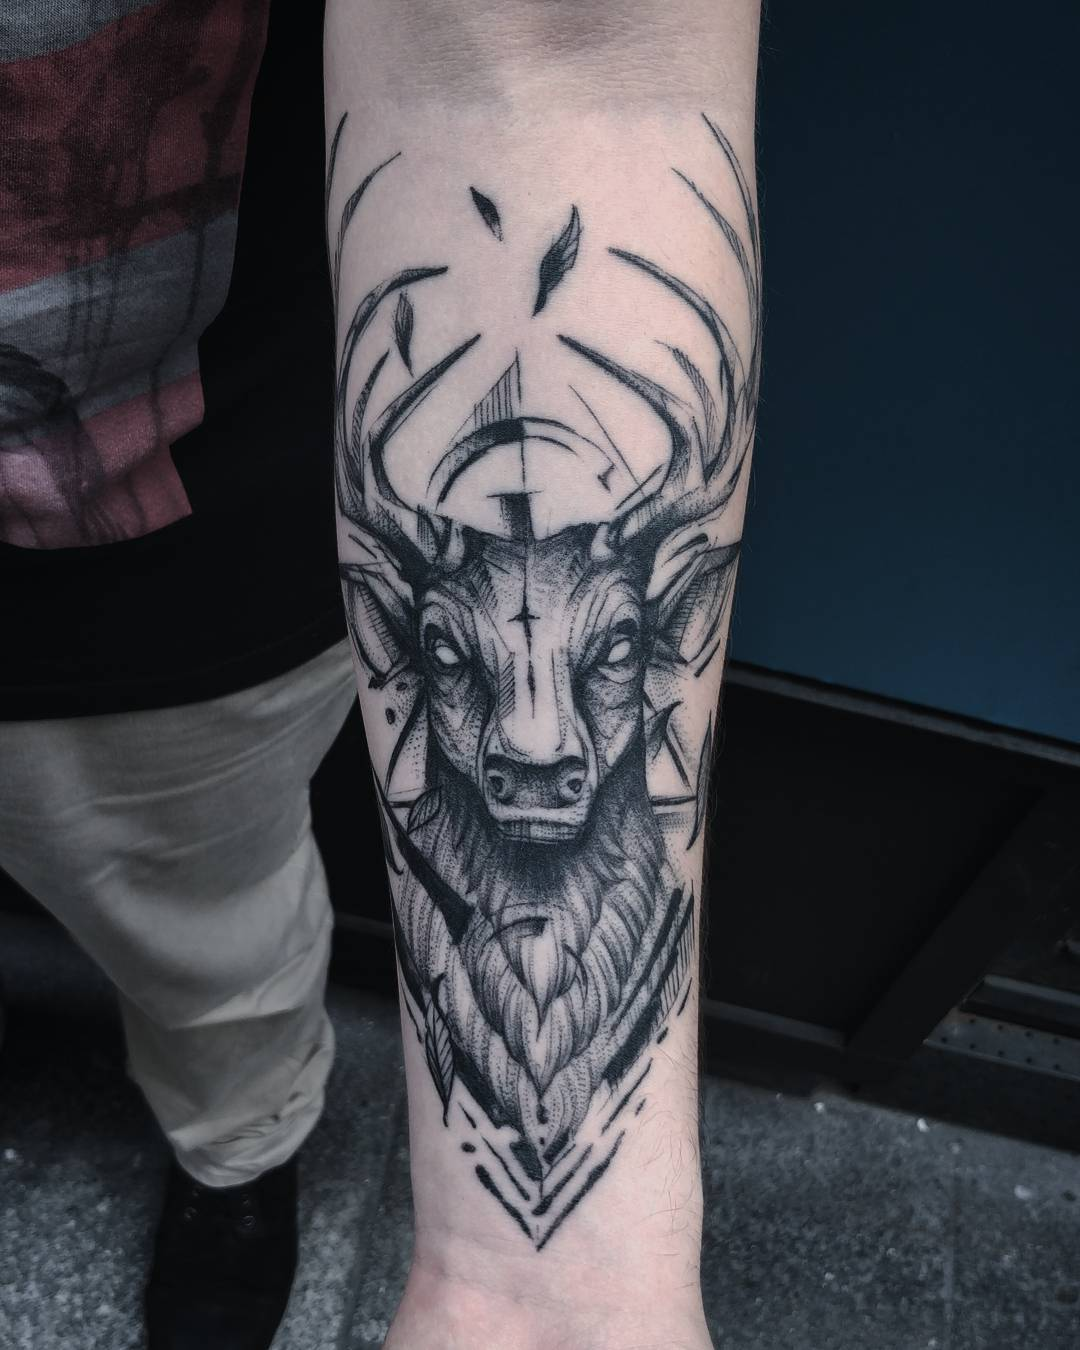 20 top tattoo trends for 2021 and 5 trends to avoid at all costs